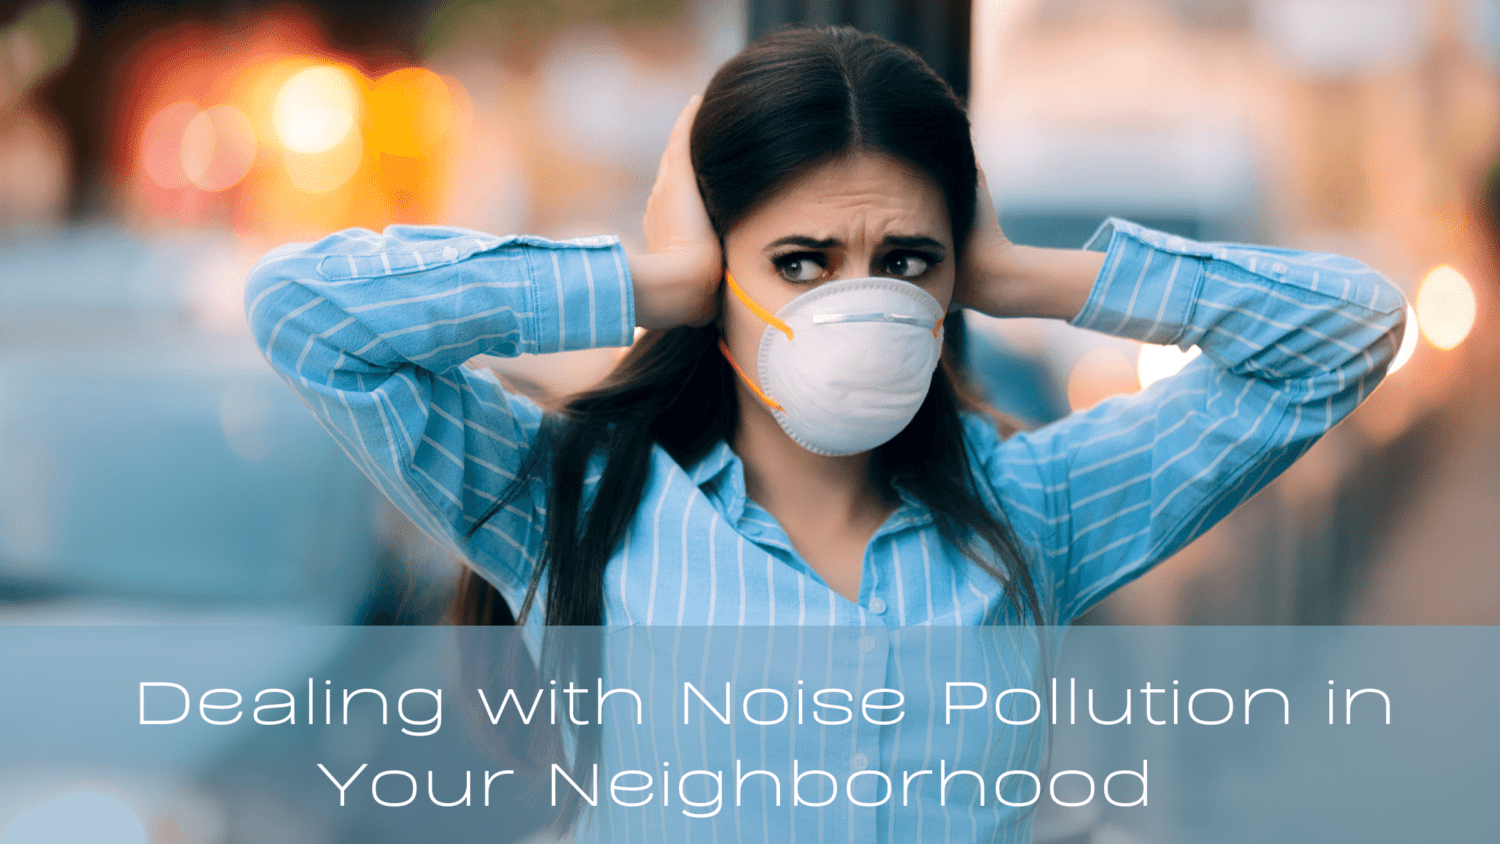 Dealing with Noise Pollution in Your Neighborhood